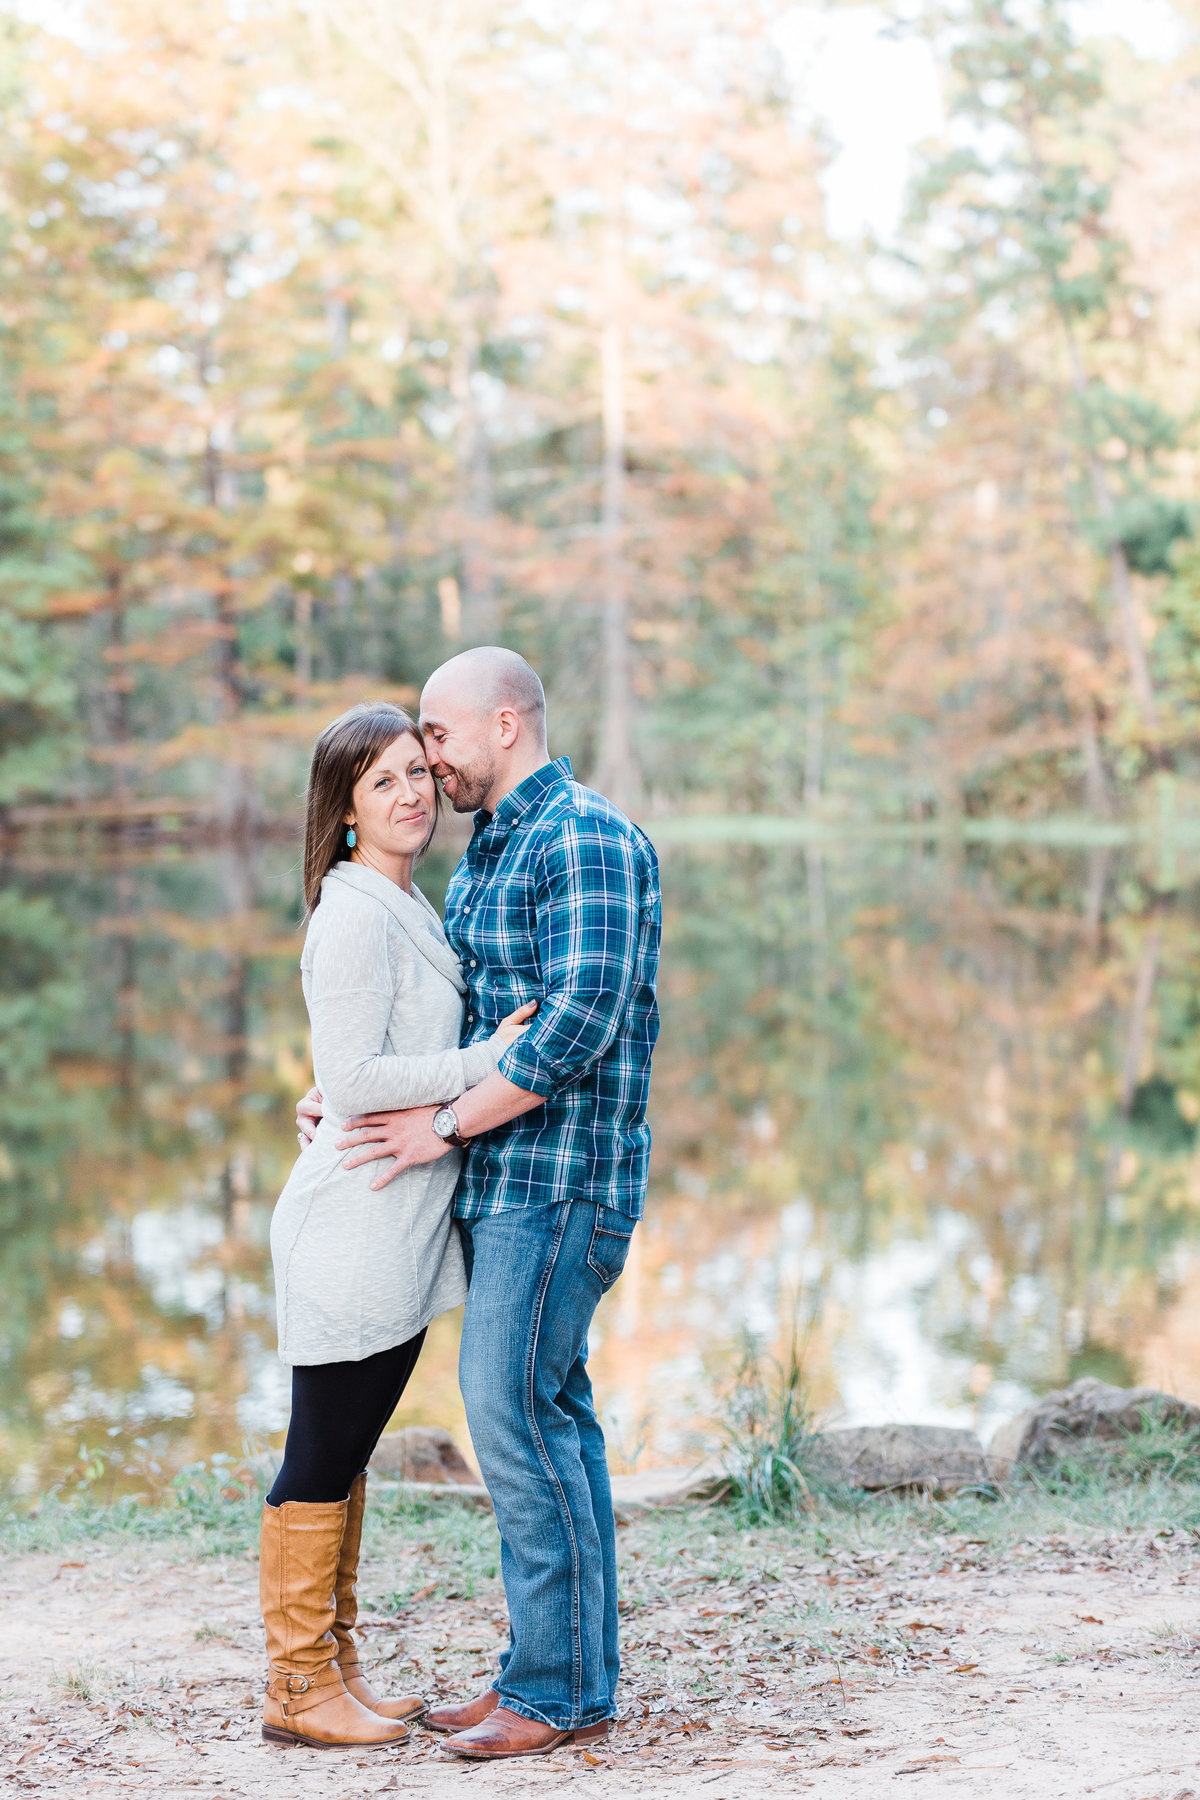 The Woodlands Engagement Photos Colorado Mountain Wedding Photographer | Monica Evans Photography